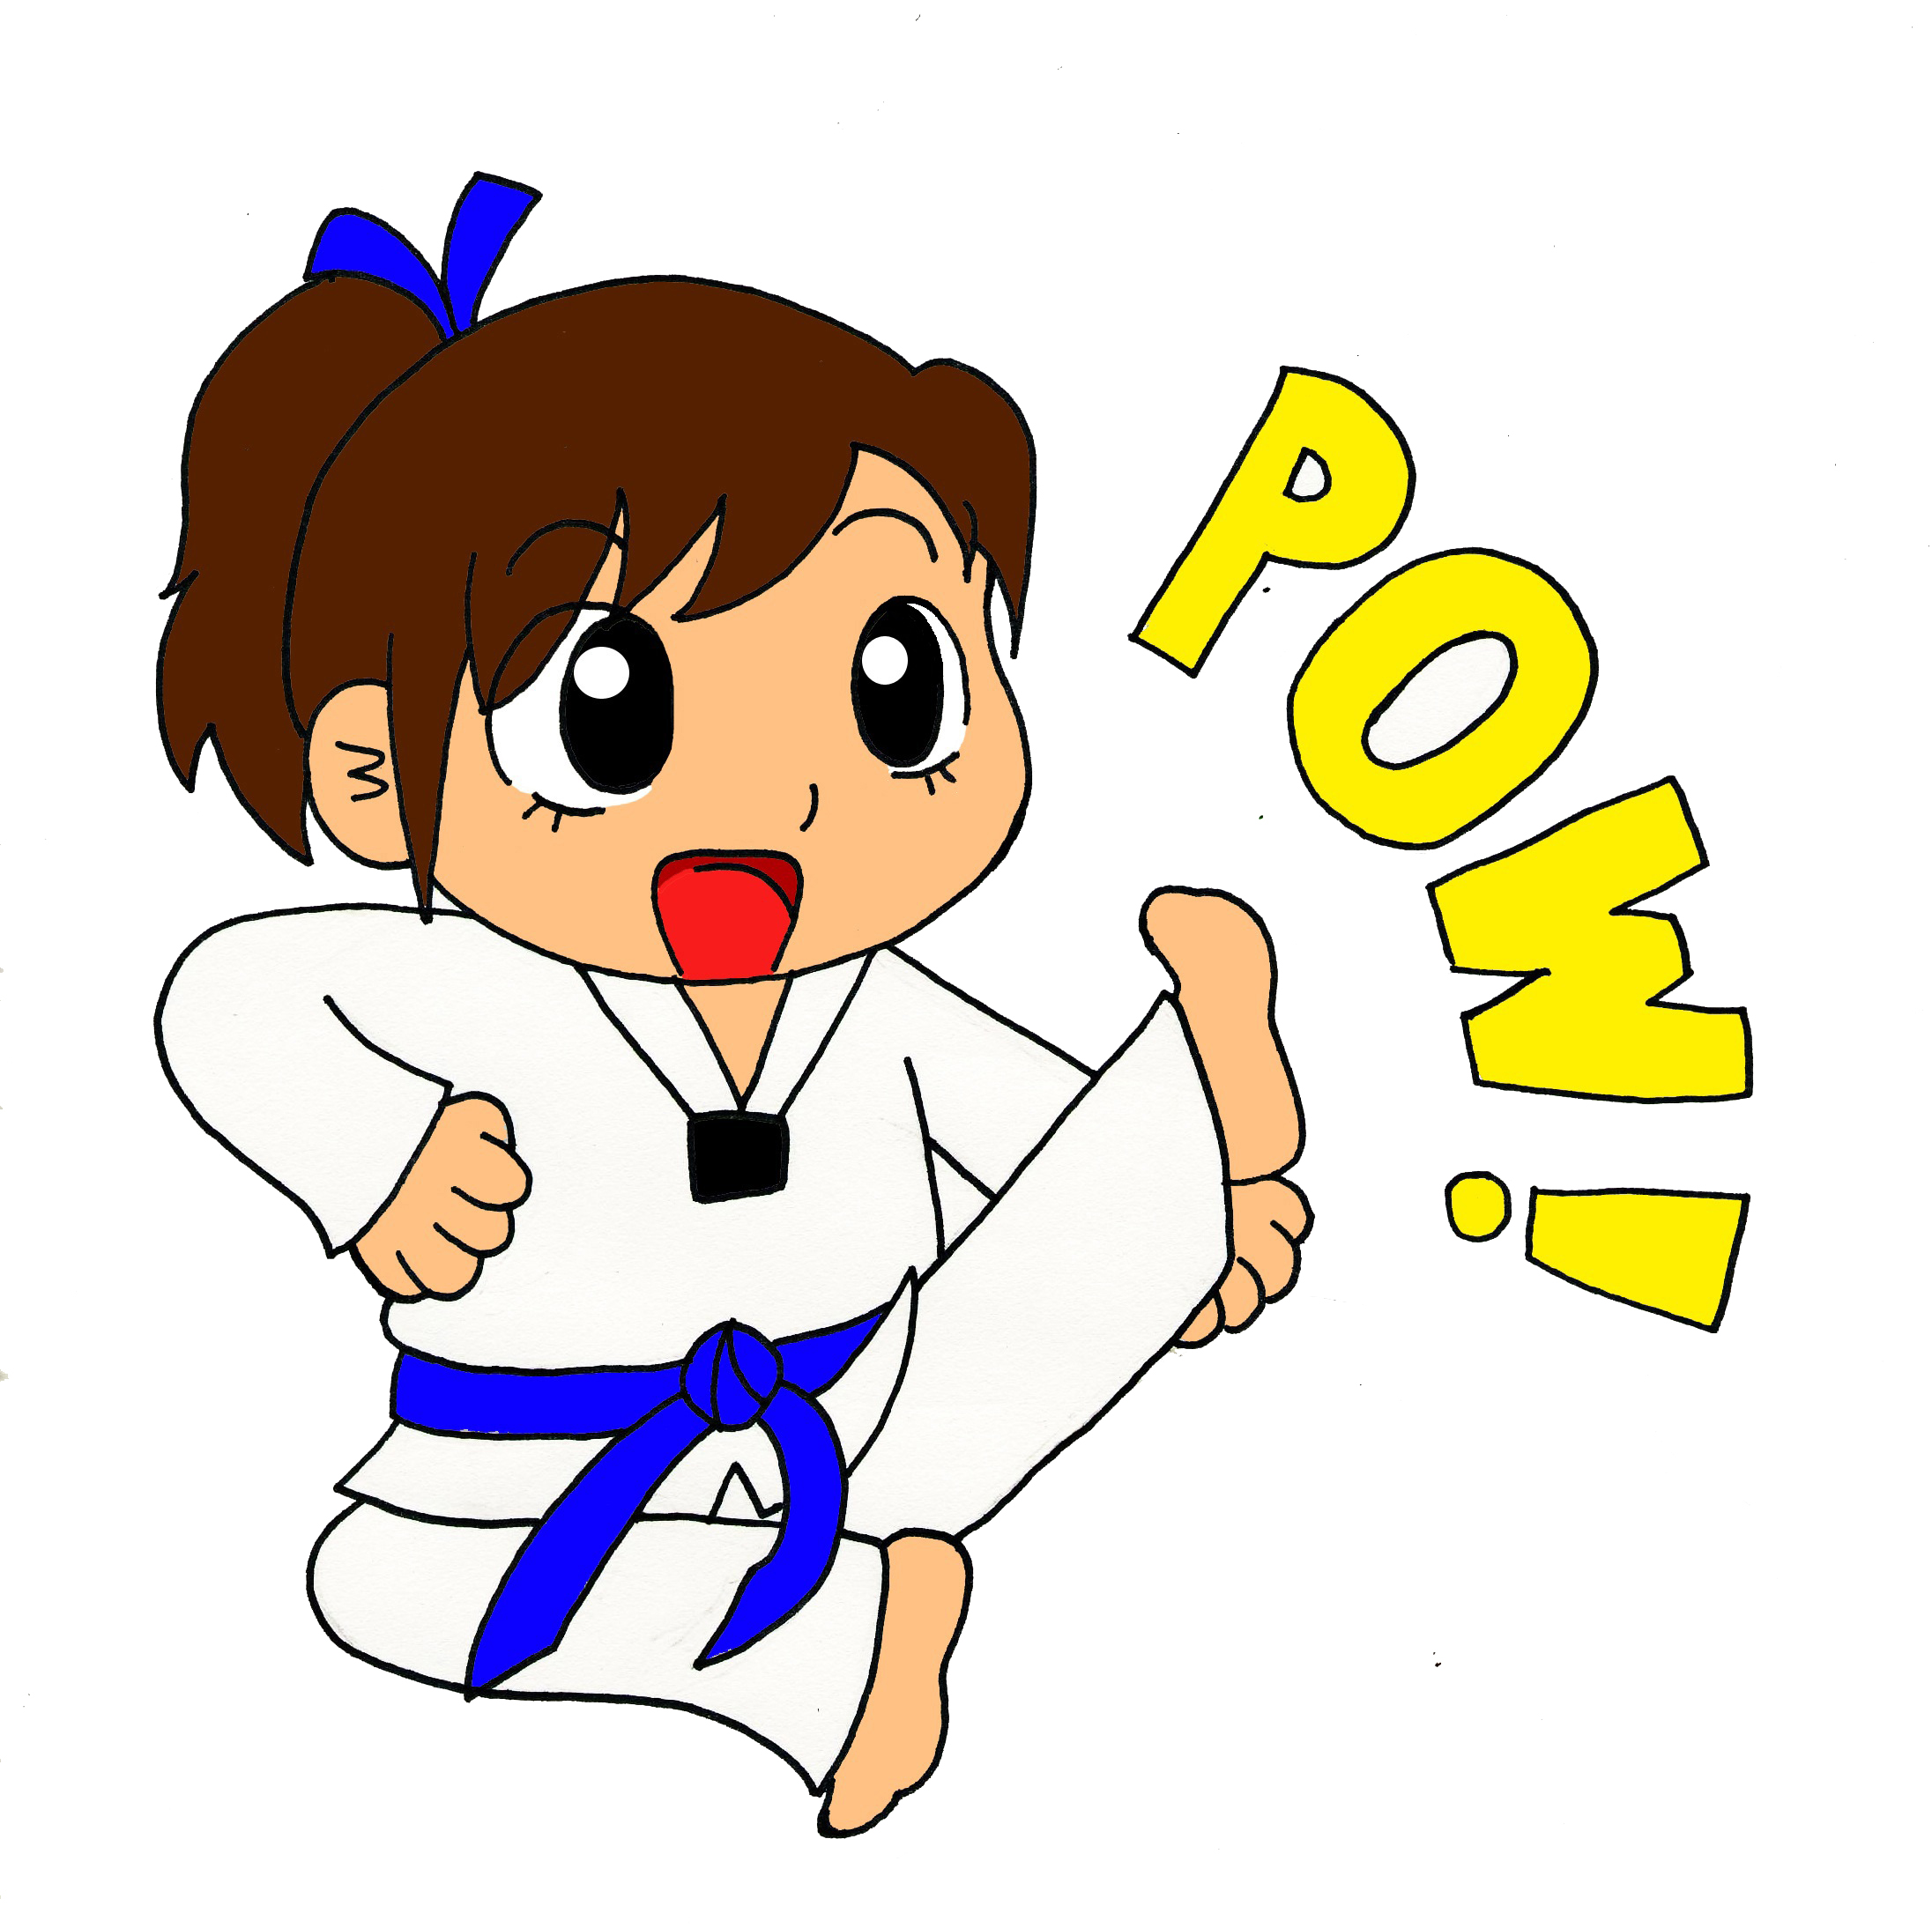 Taekwondo clipart images picture library stock Free Taekwondo Cliparts, Download Free Clip Art, Free Clip ... picture library stock